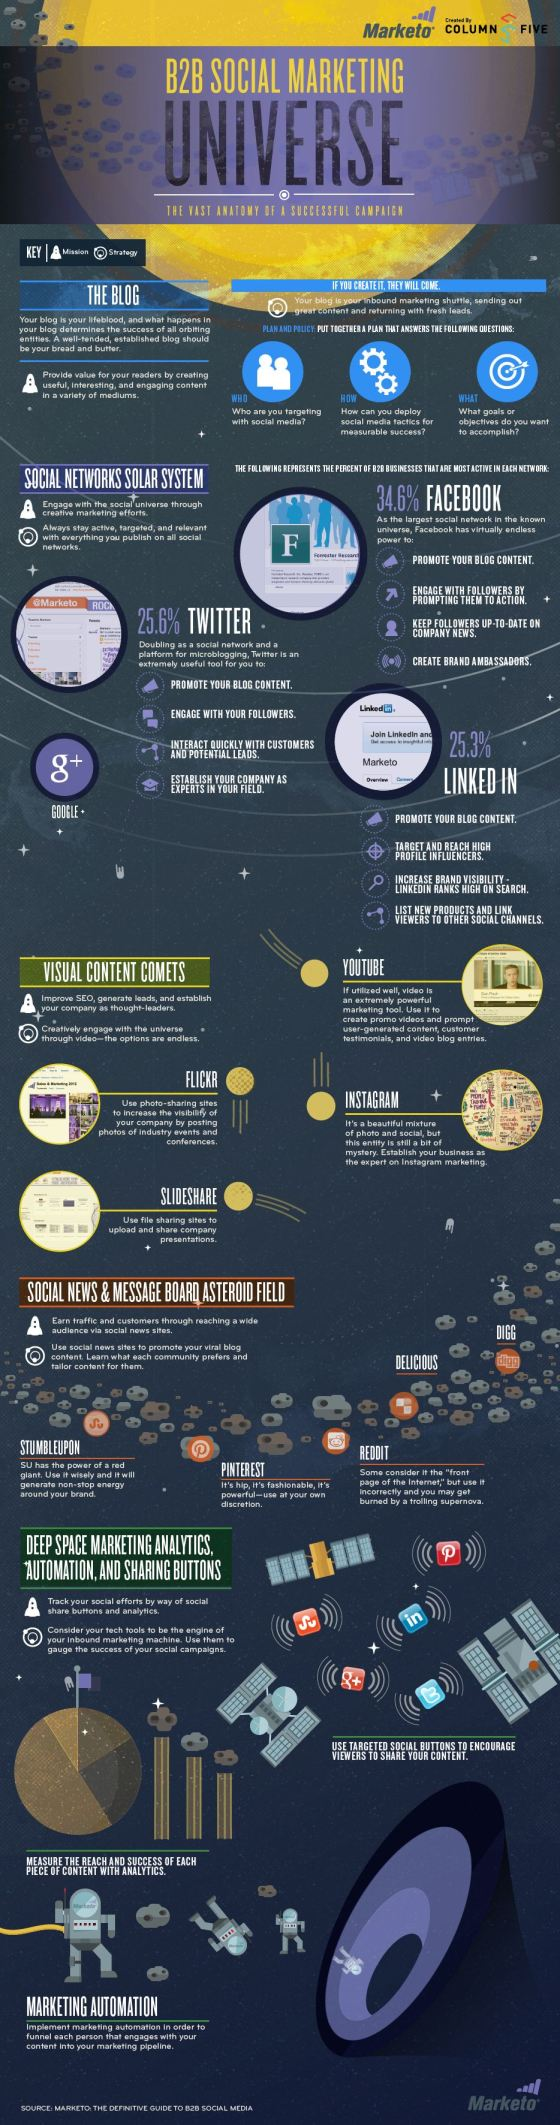 B2B Social Marketing Universe: The Vast Anatomy of a Successful Campaign [Infographic]